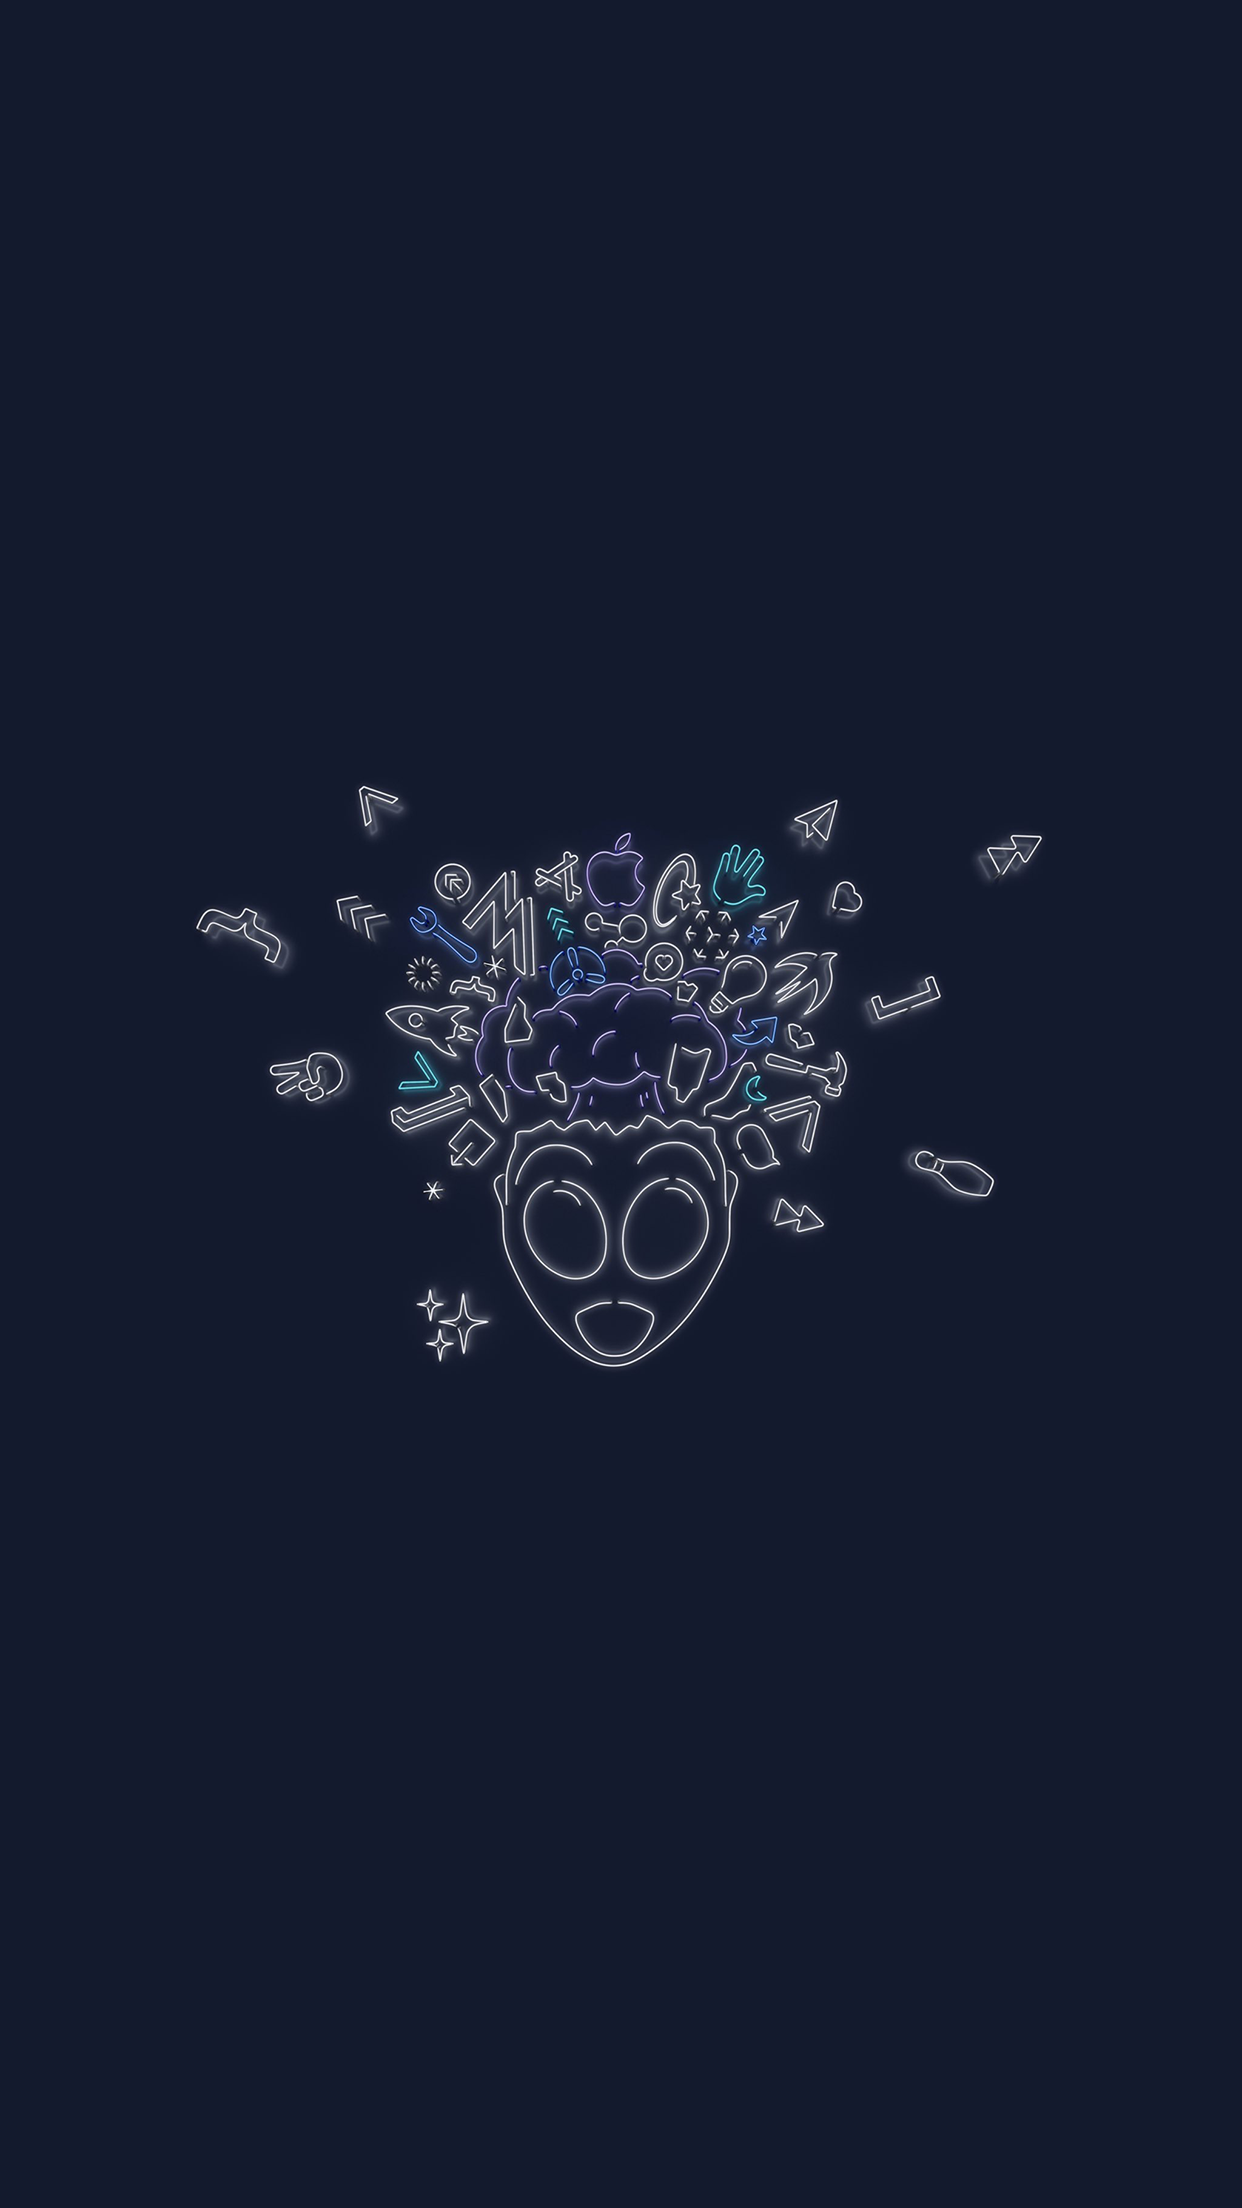 Download The Wwdc 2019 Dark Mode Themed Wallpapers For Iphone Ipad